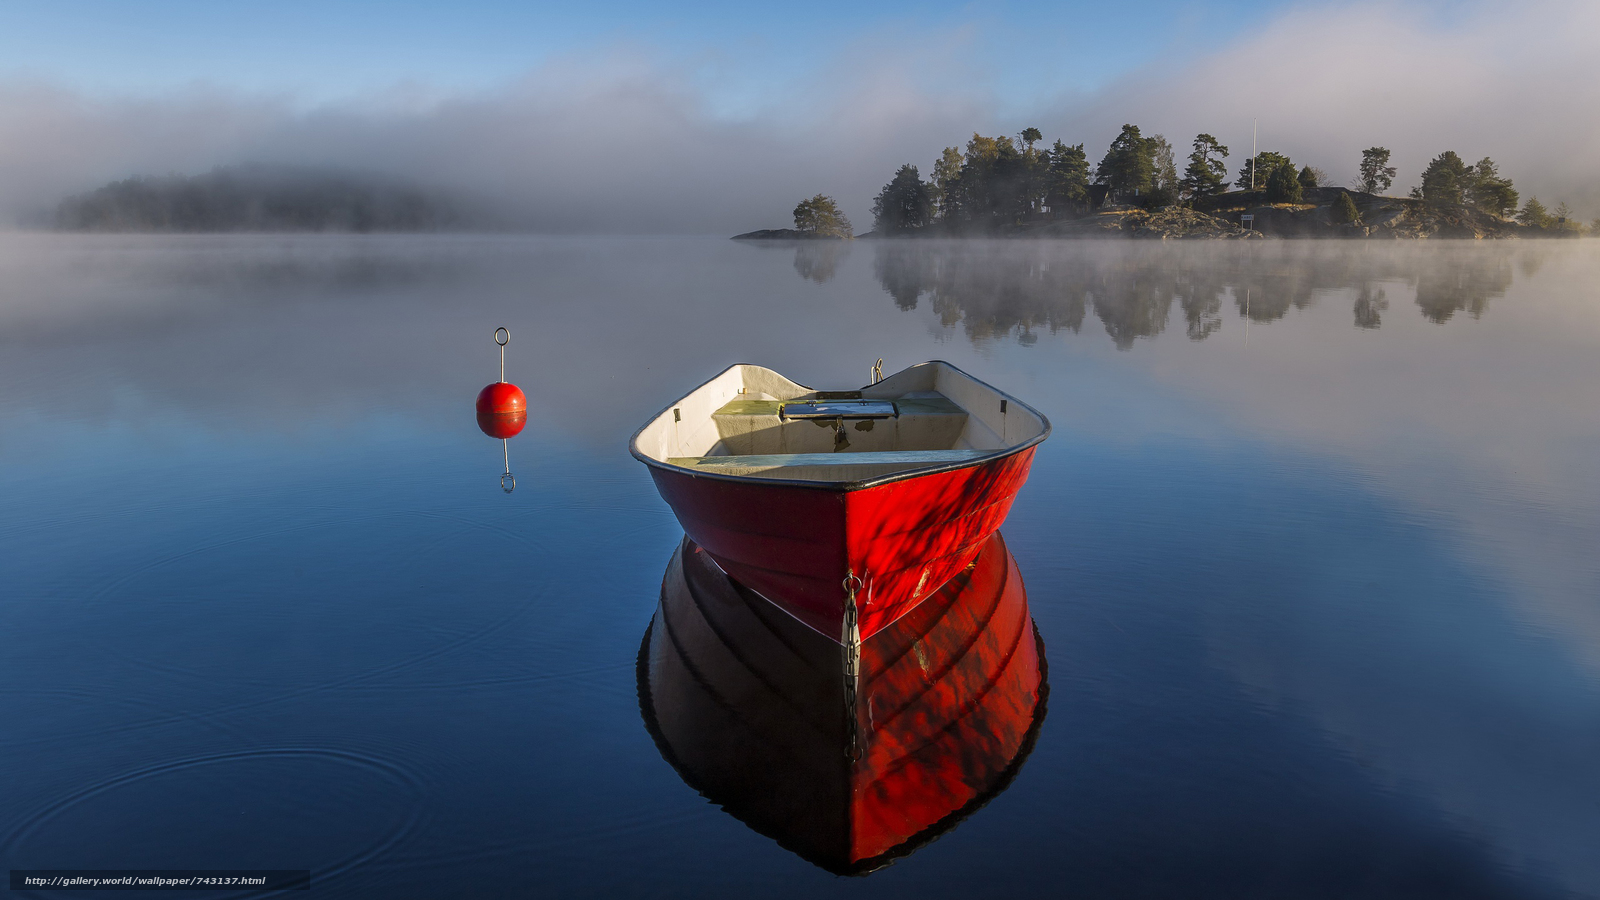 landscape, a boat, boats, water, nature, peace, relaxation, River, lake, dawn, fog, red, reflection, morning